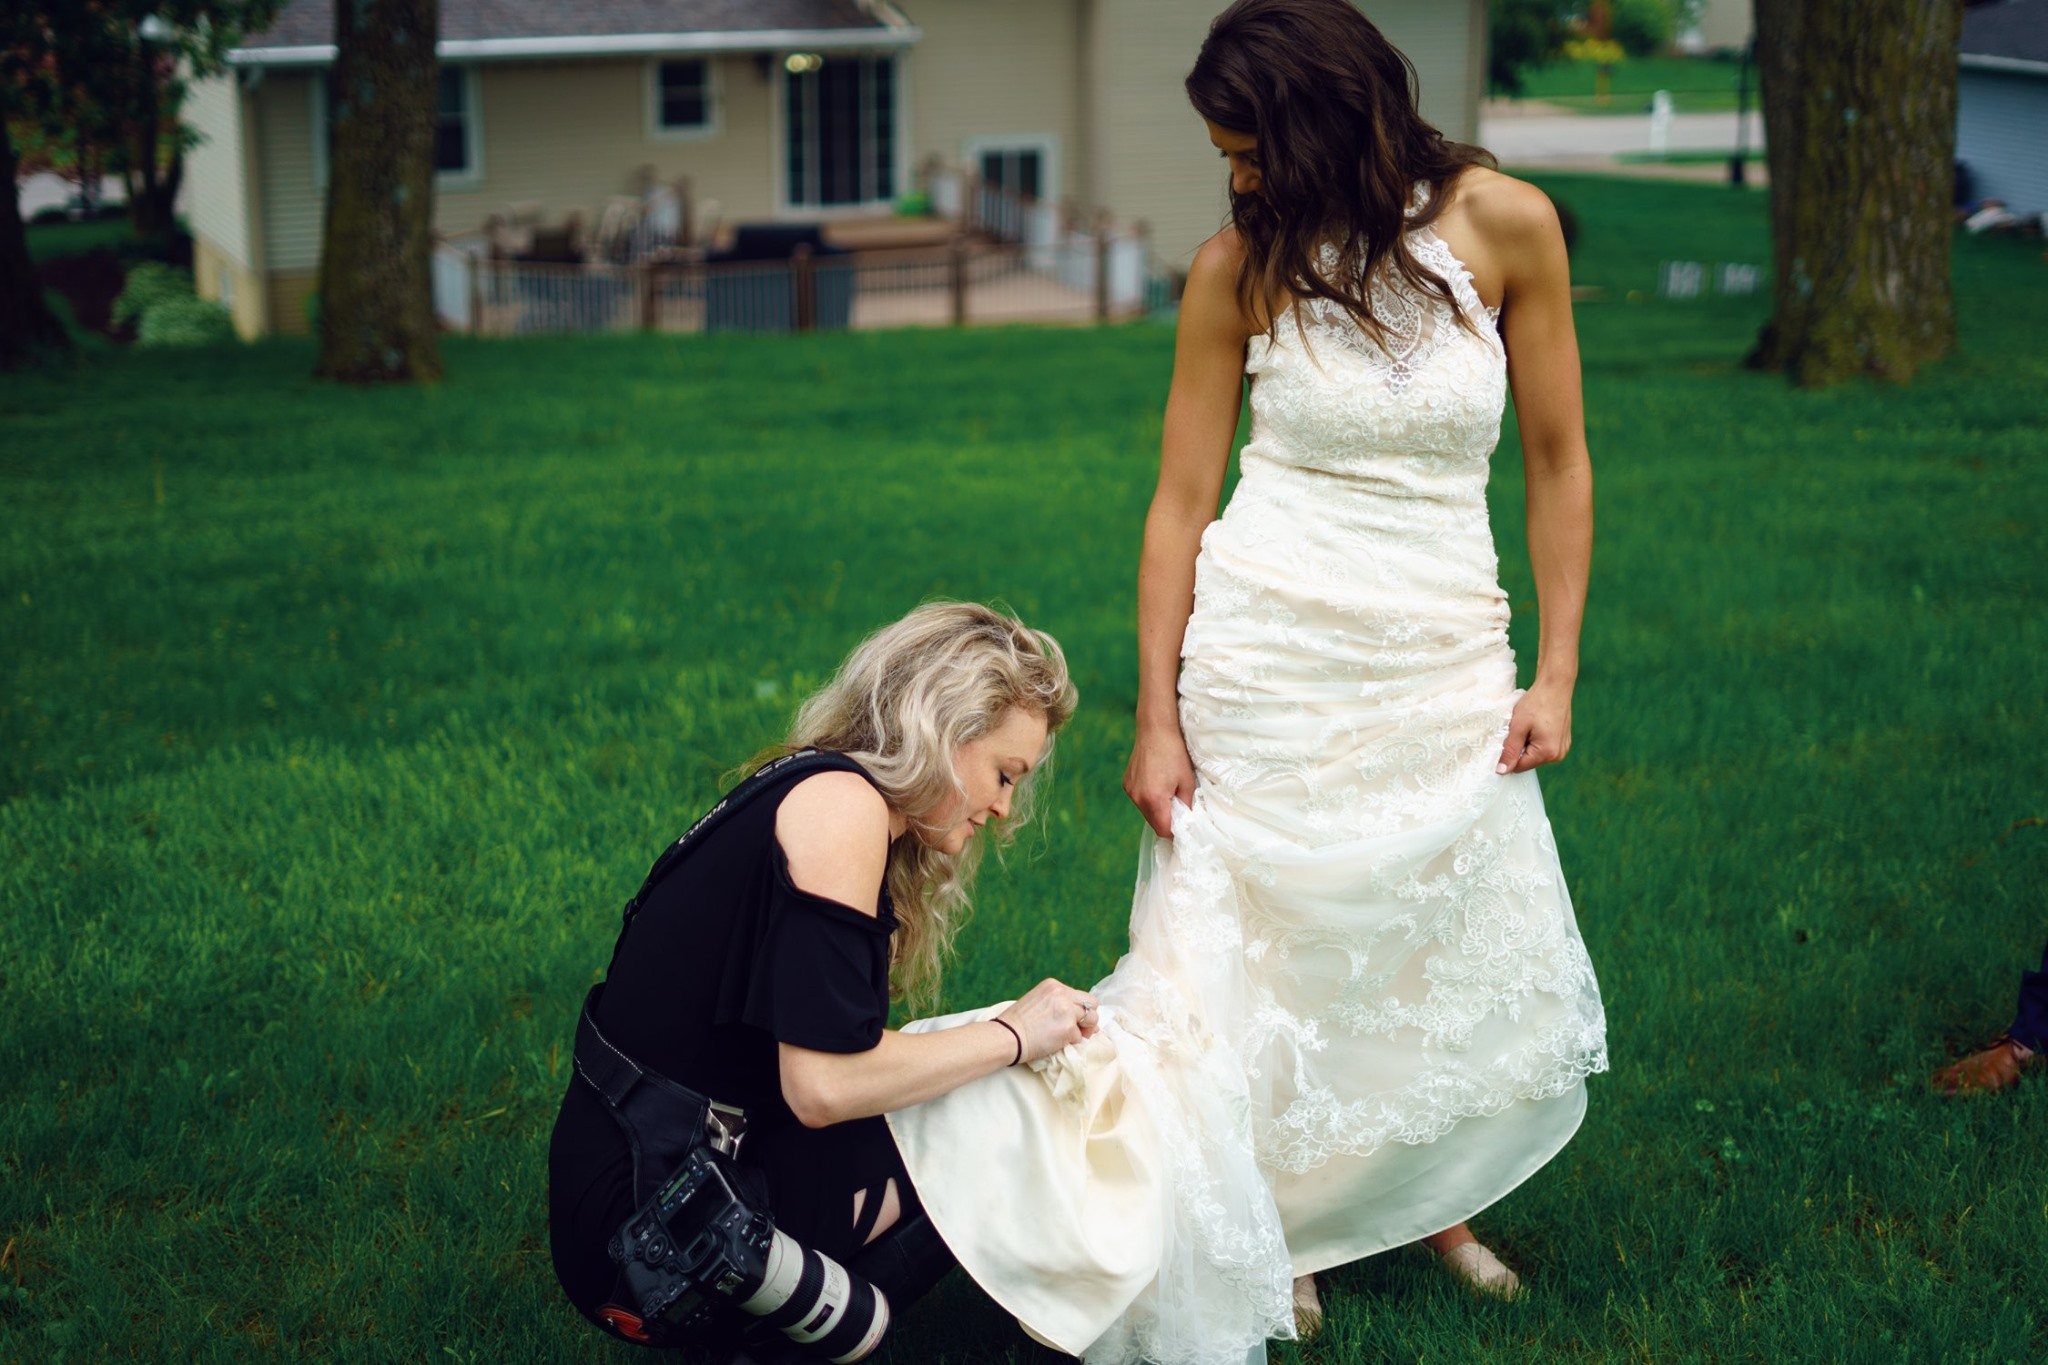 lauren-ashley-wedding-photography-photographer-cleaning-mud-off-dress.jpg